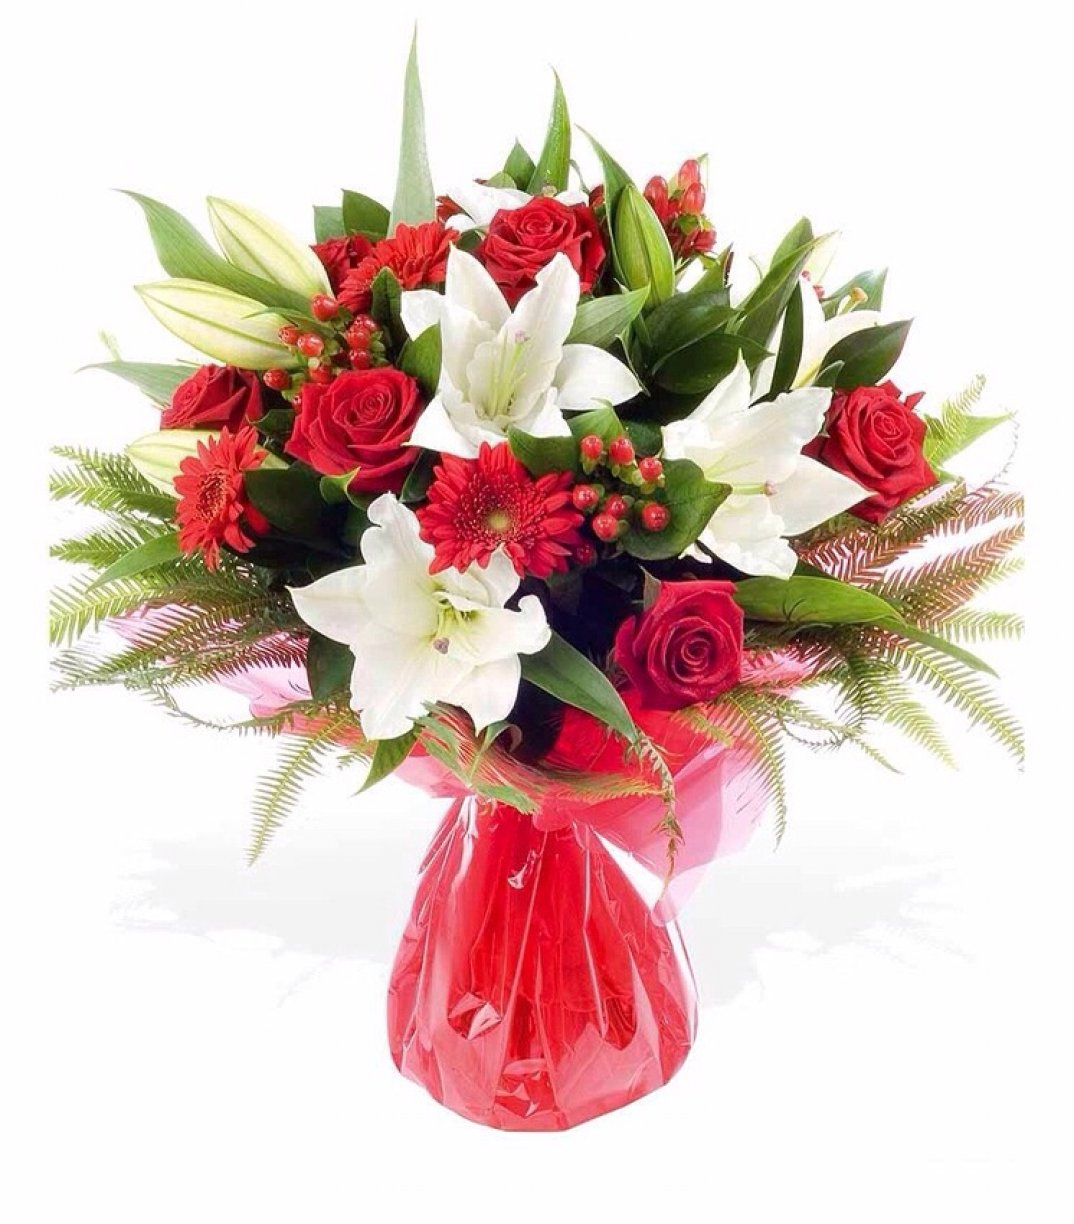 Red & White theme flowers arranged in their own water bag!